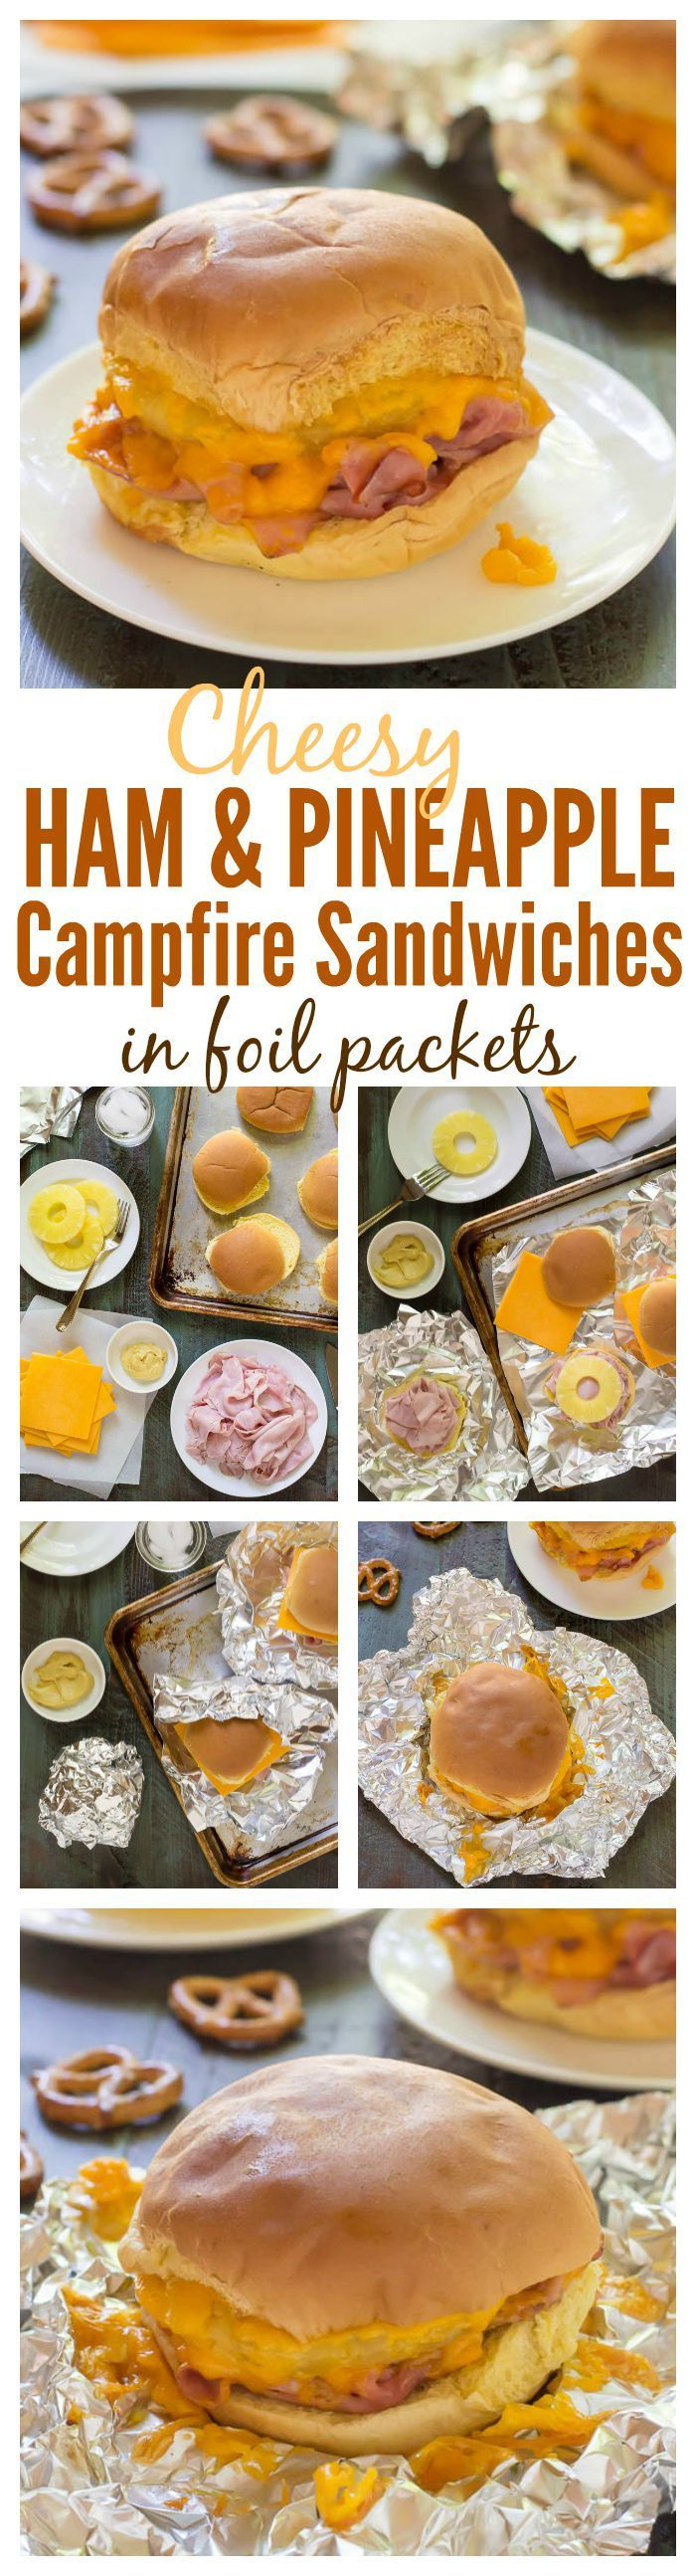 Cheesy Ham And Pineapple Campfire Sandwiches An Easy Foil Recipe That Is Our Familys Favorite